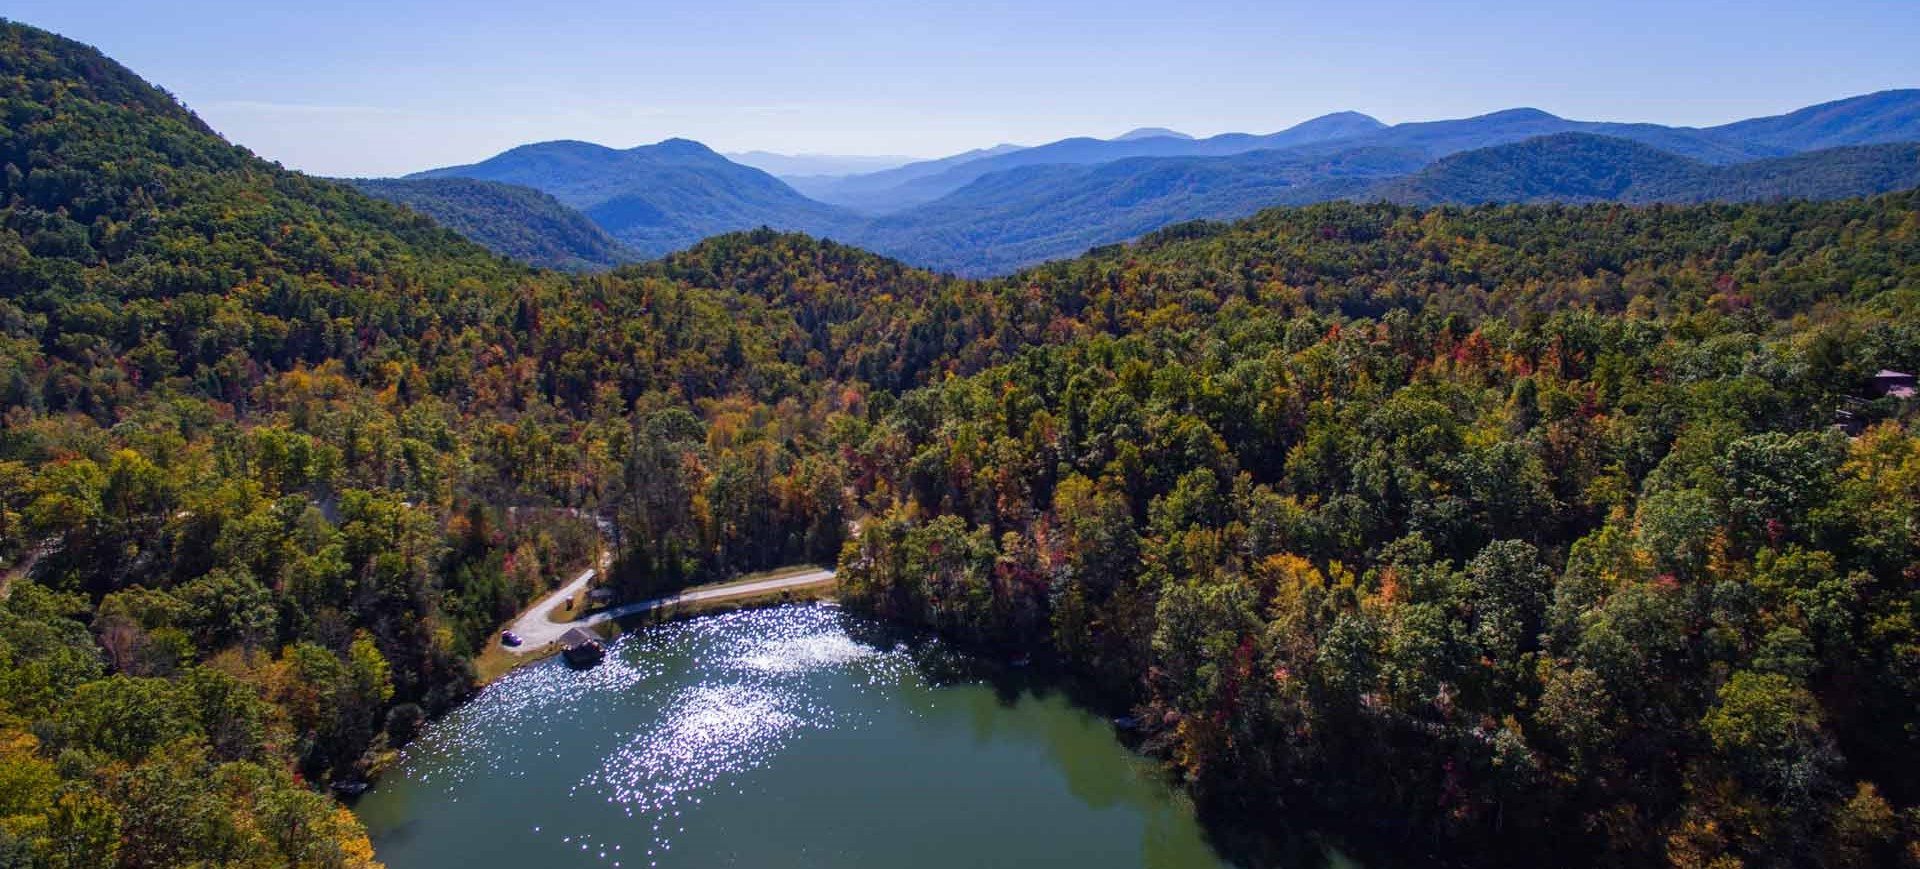 Gateway Mountain North Carolina